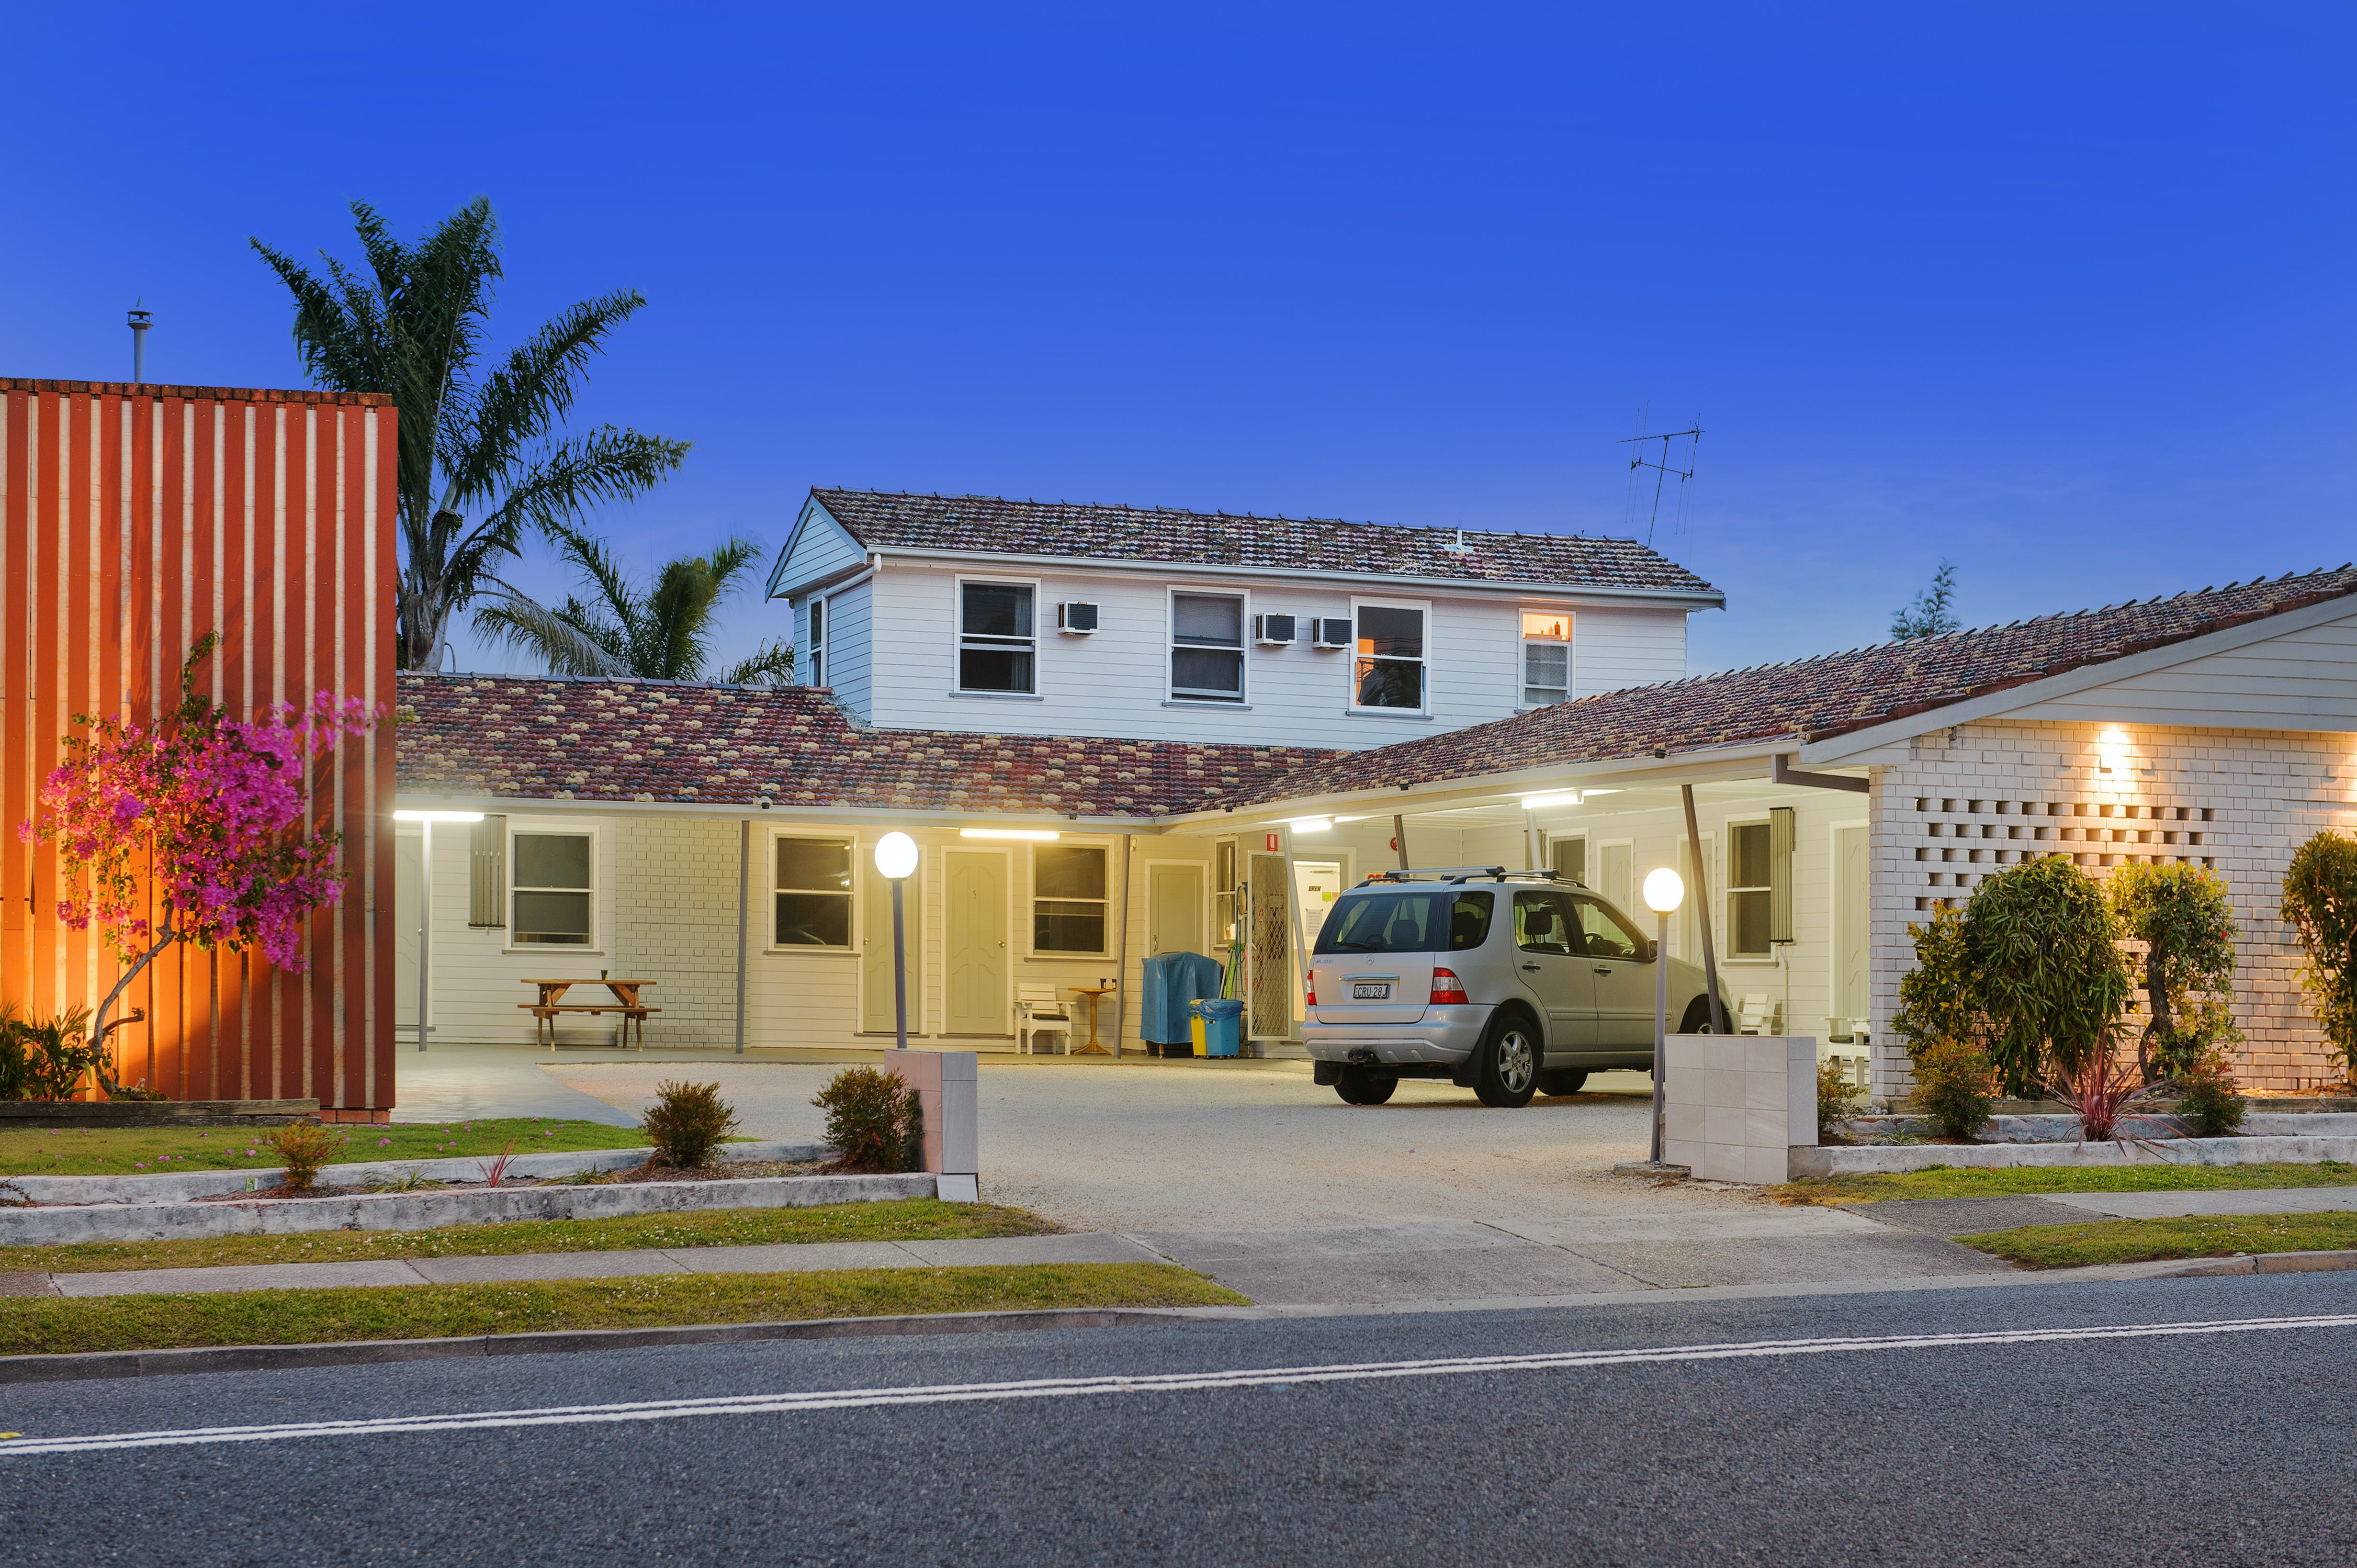 Wauchope Motel - Coogee Beach Accommodation